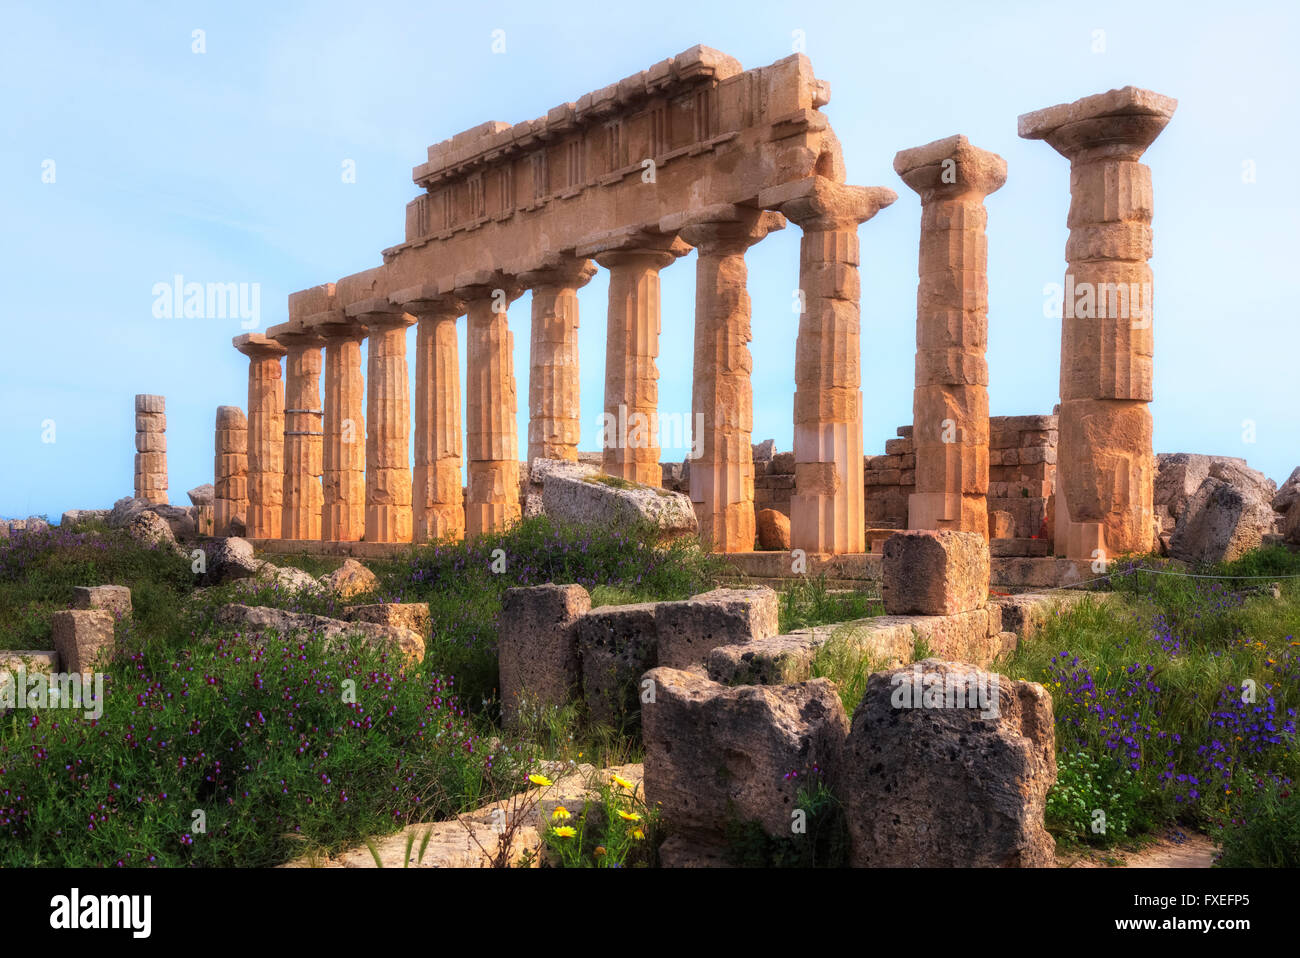 Selinunte, Castelvetrano, Sicily, Italy Stock Photo